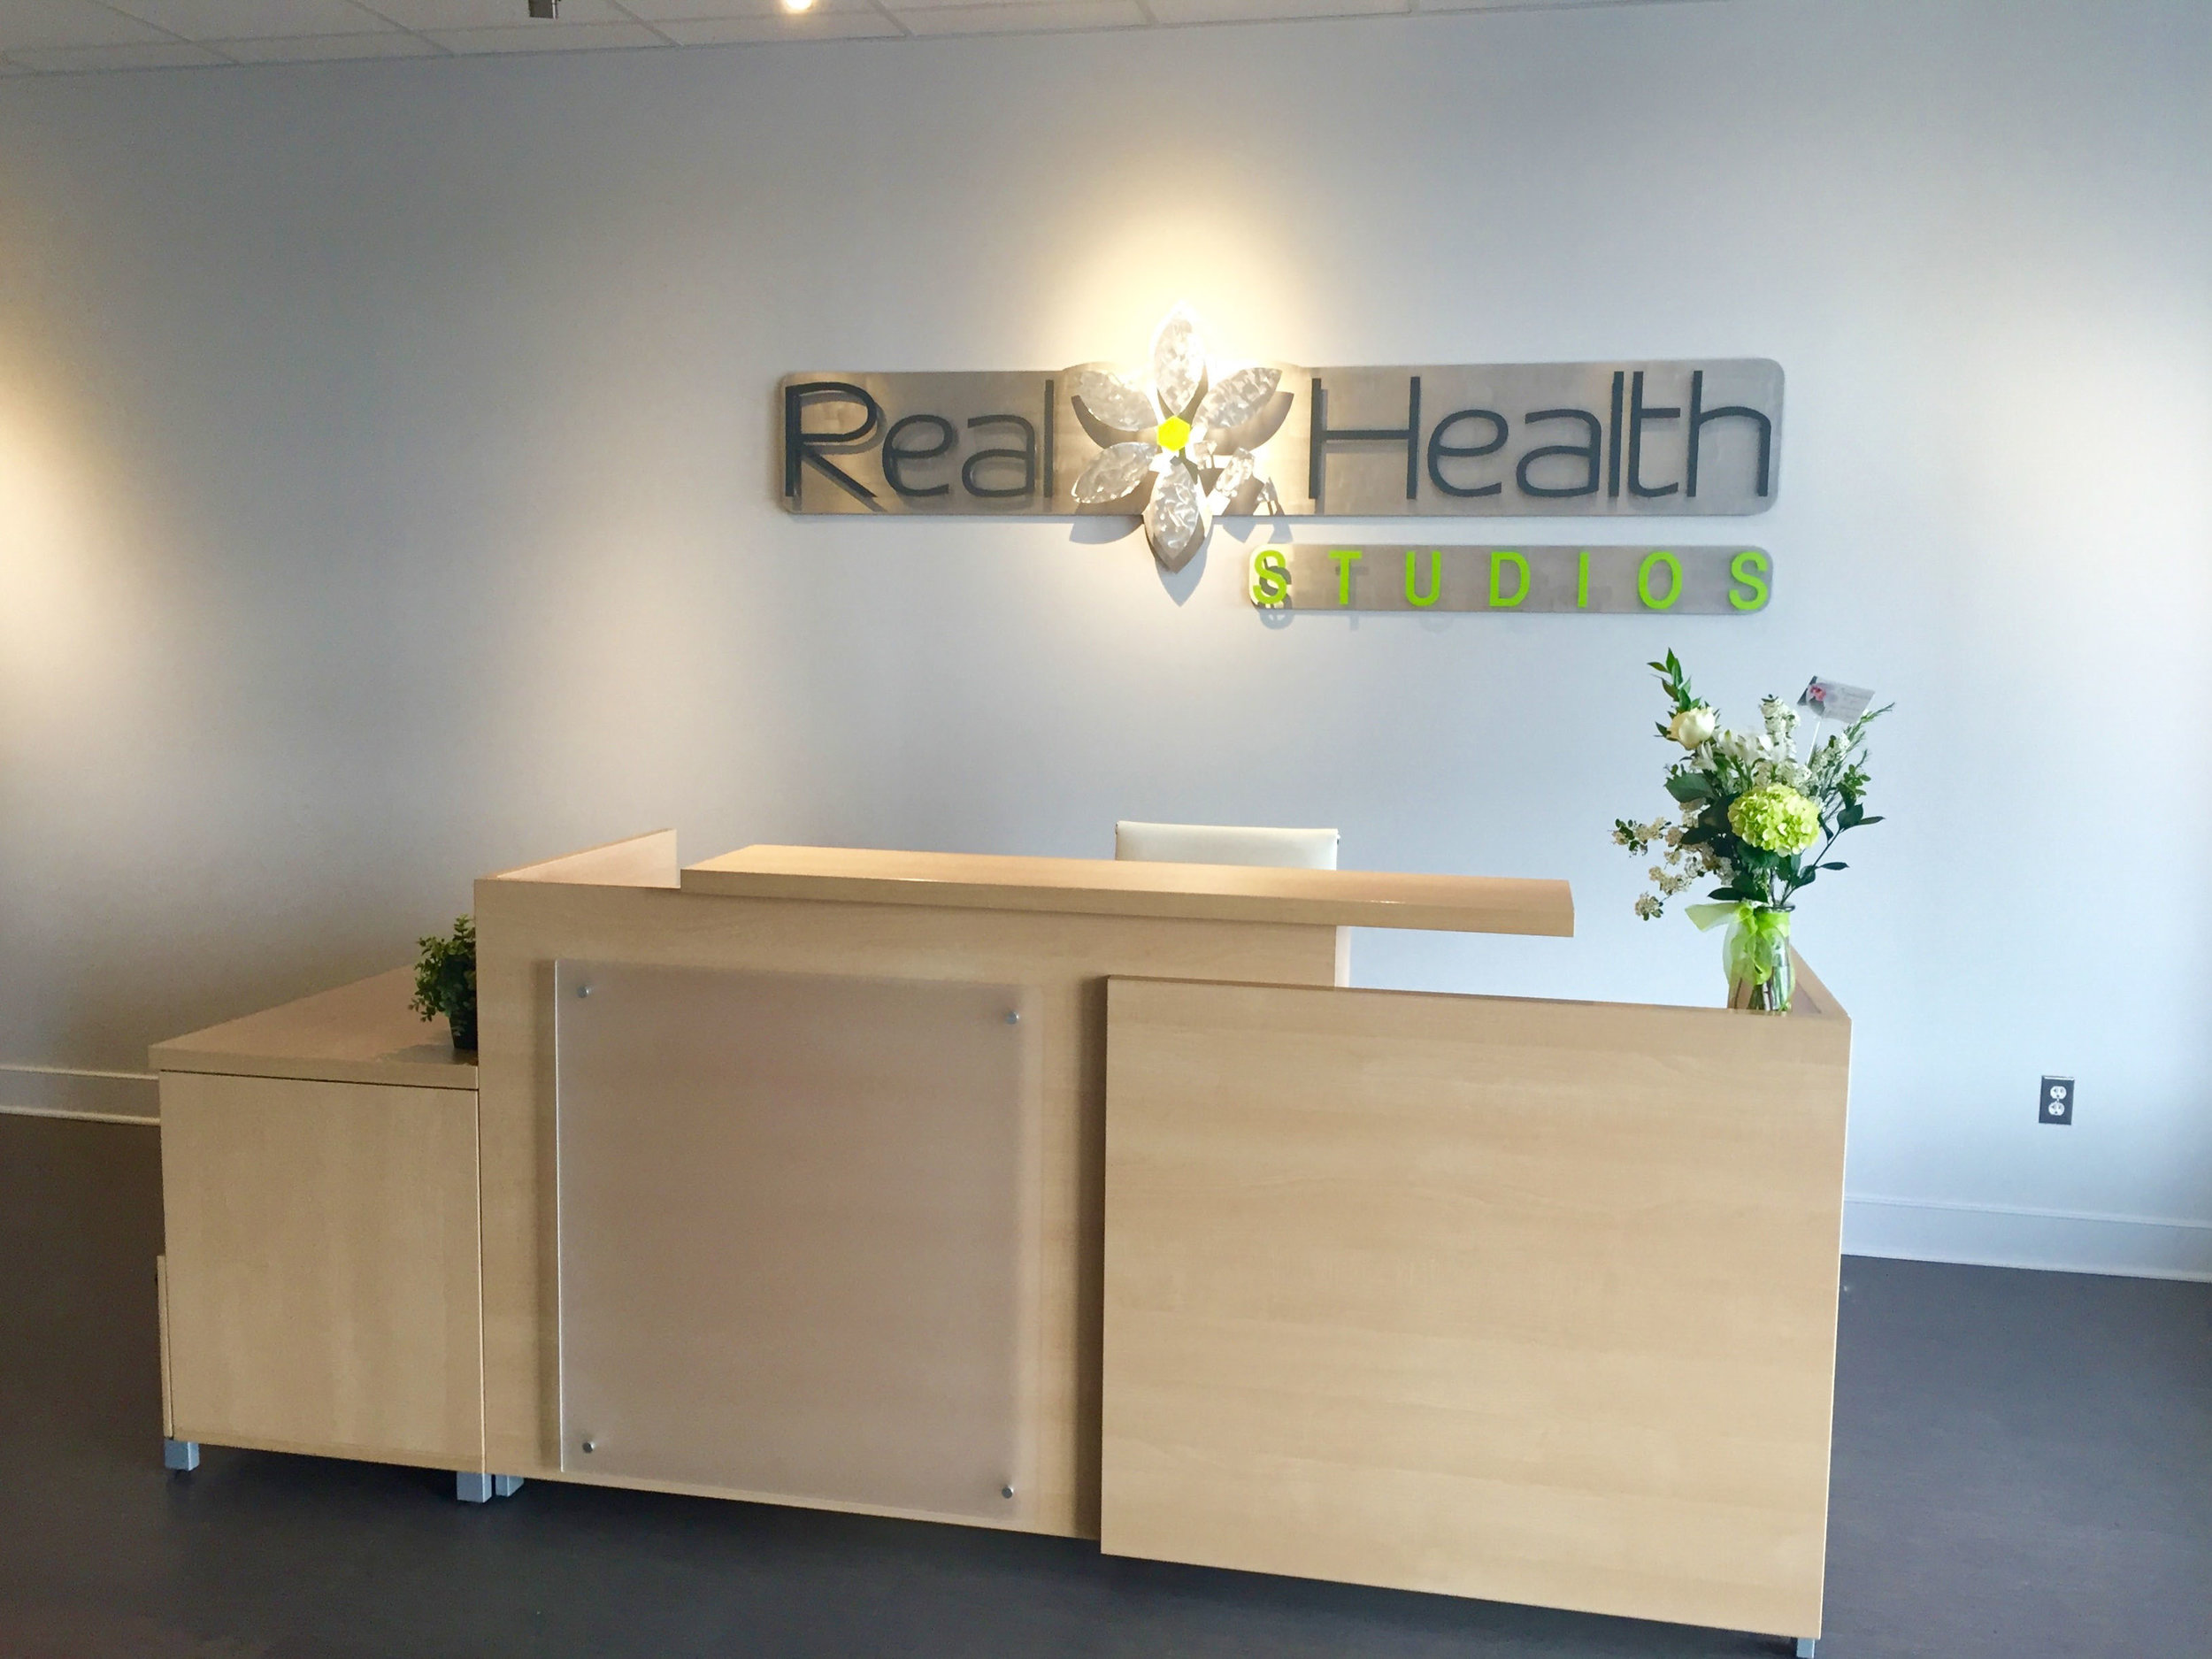 Custom Office Metal Sign - Real Health Studios Frederick MD